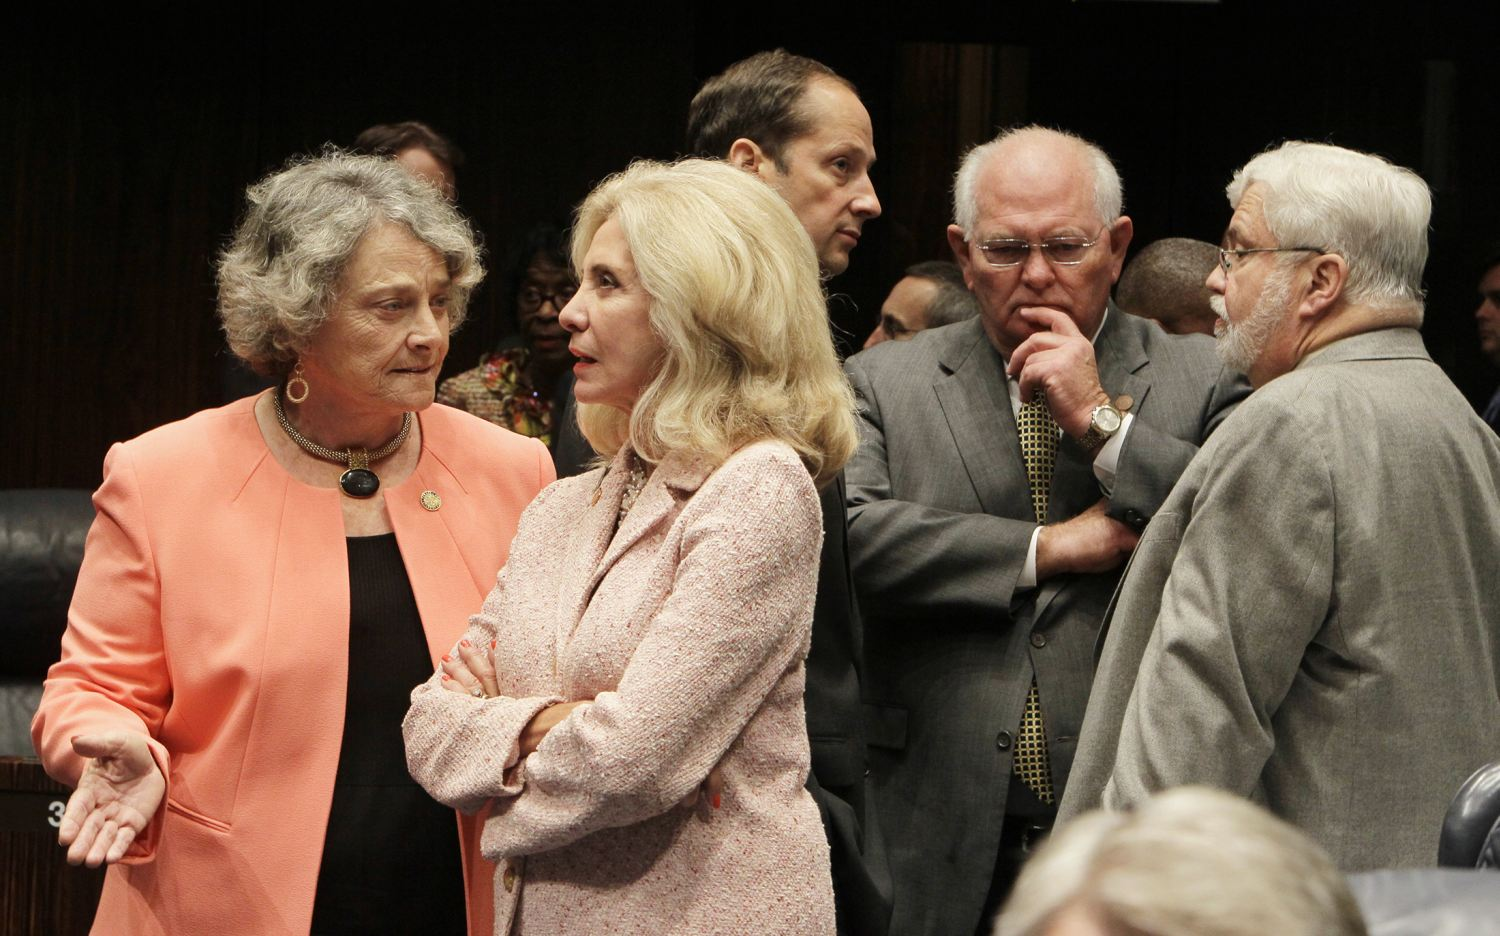 As word spread through the Florida Senate on April 28 that the Florida House had Sine Die for the 2015 session, Florida Senators huddle. Left to Right are Sens. Nancy Detert, Maria Sachs, Joe Negron, Bill Montford, and Jack Latvala. (Tampa Bay Times)